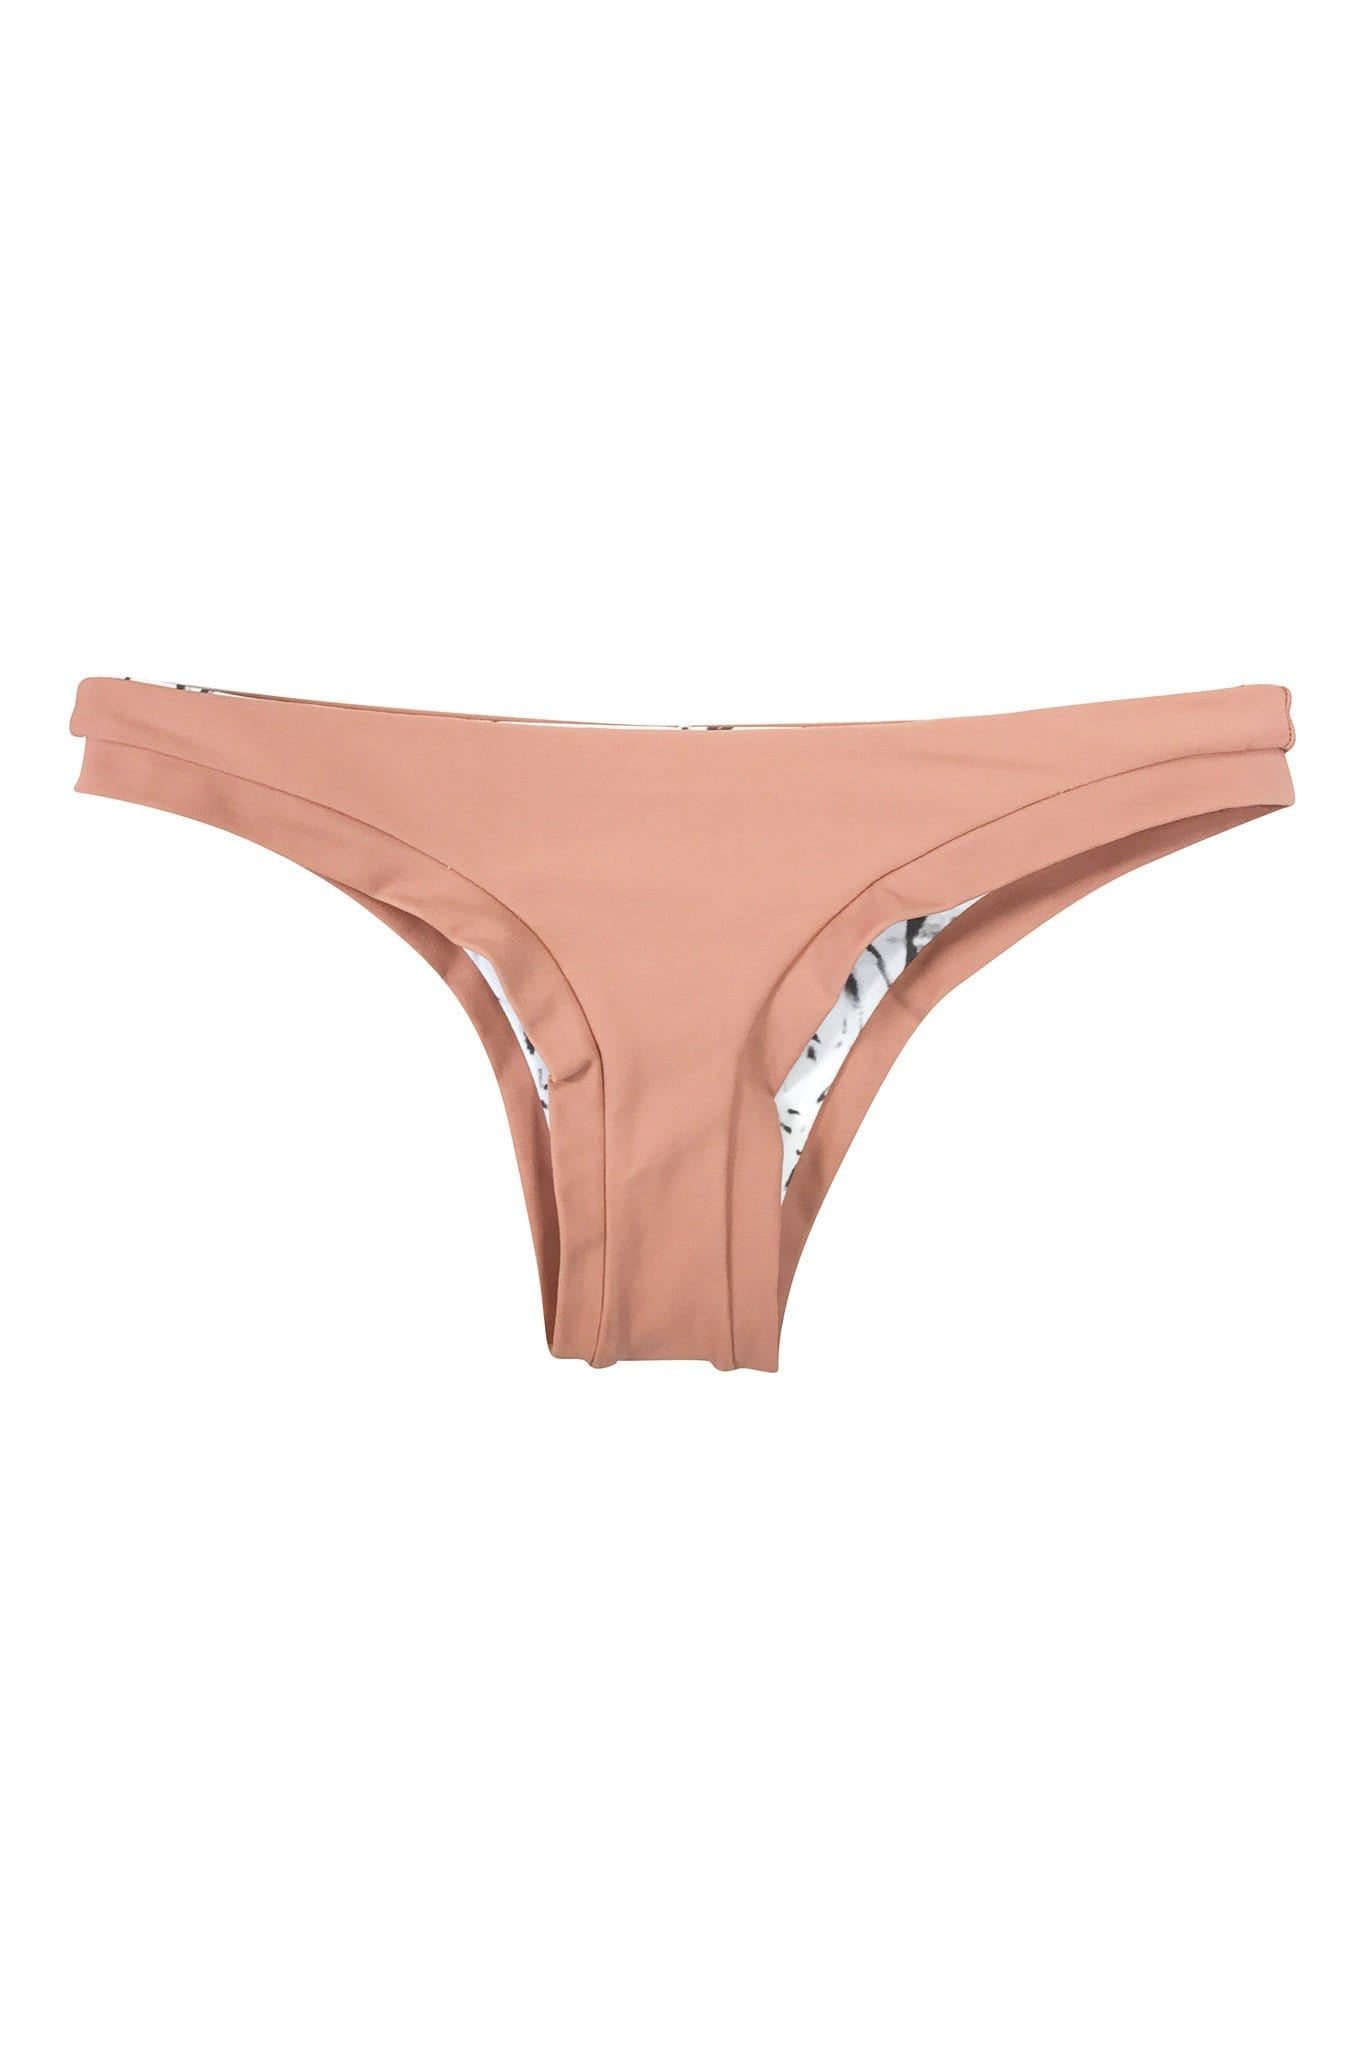 Coco Bottom Bone Honey Reversible